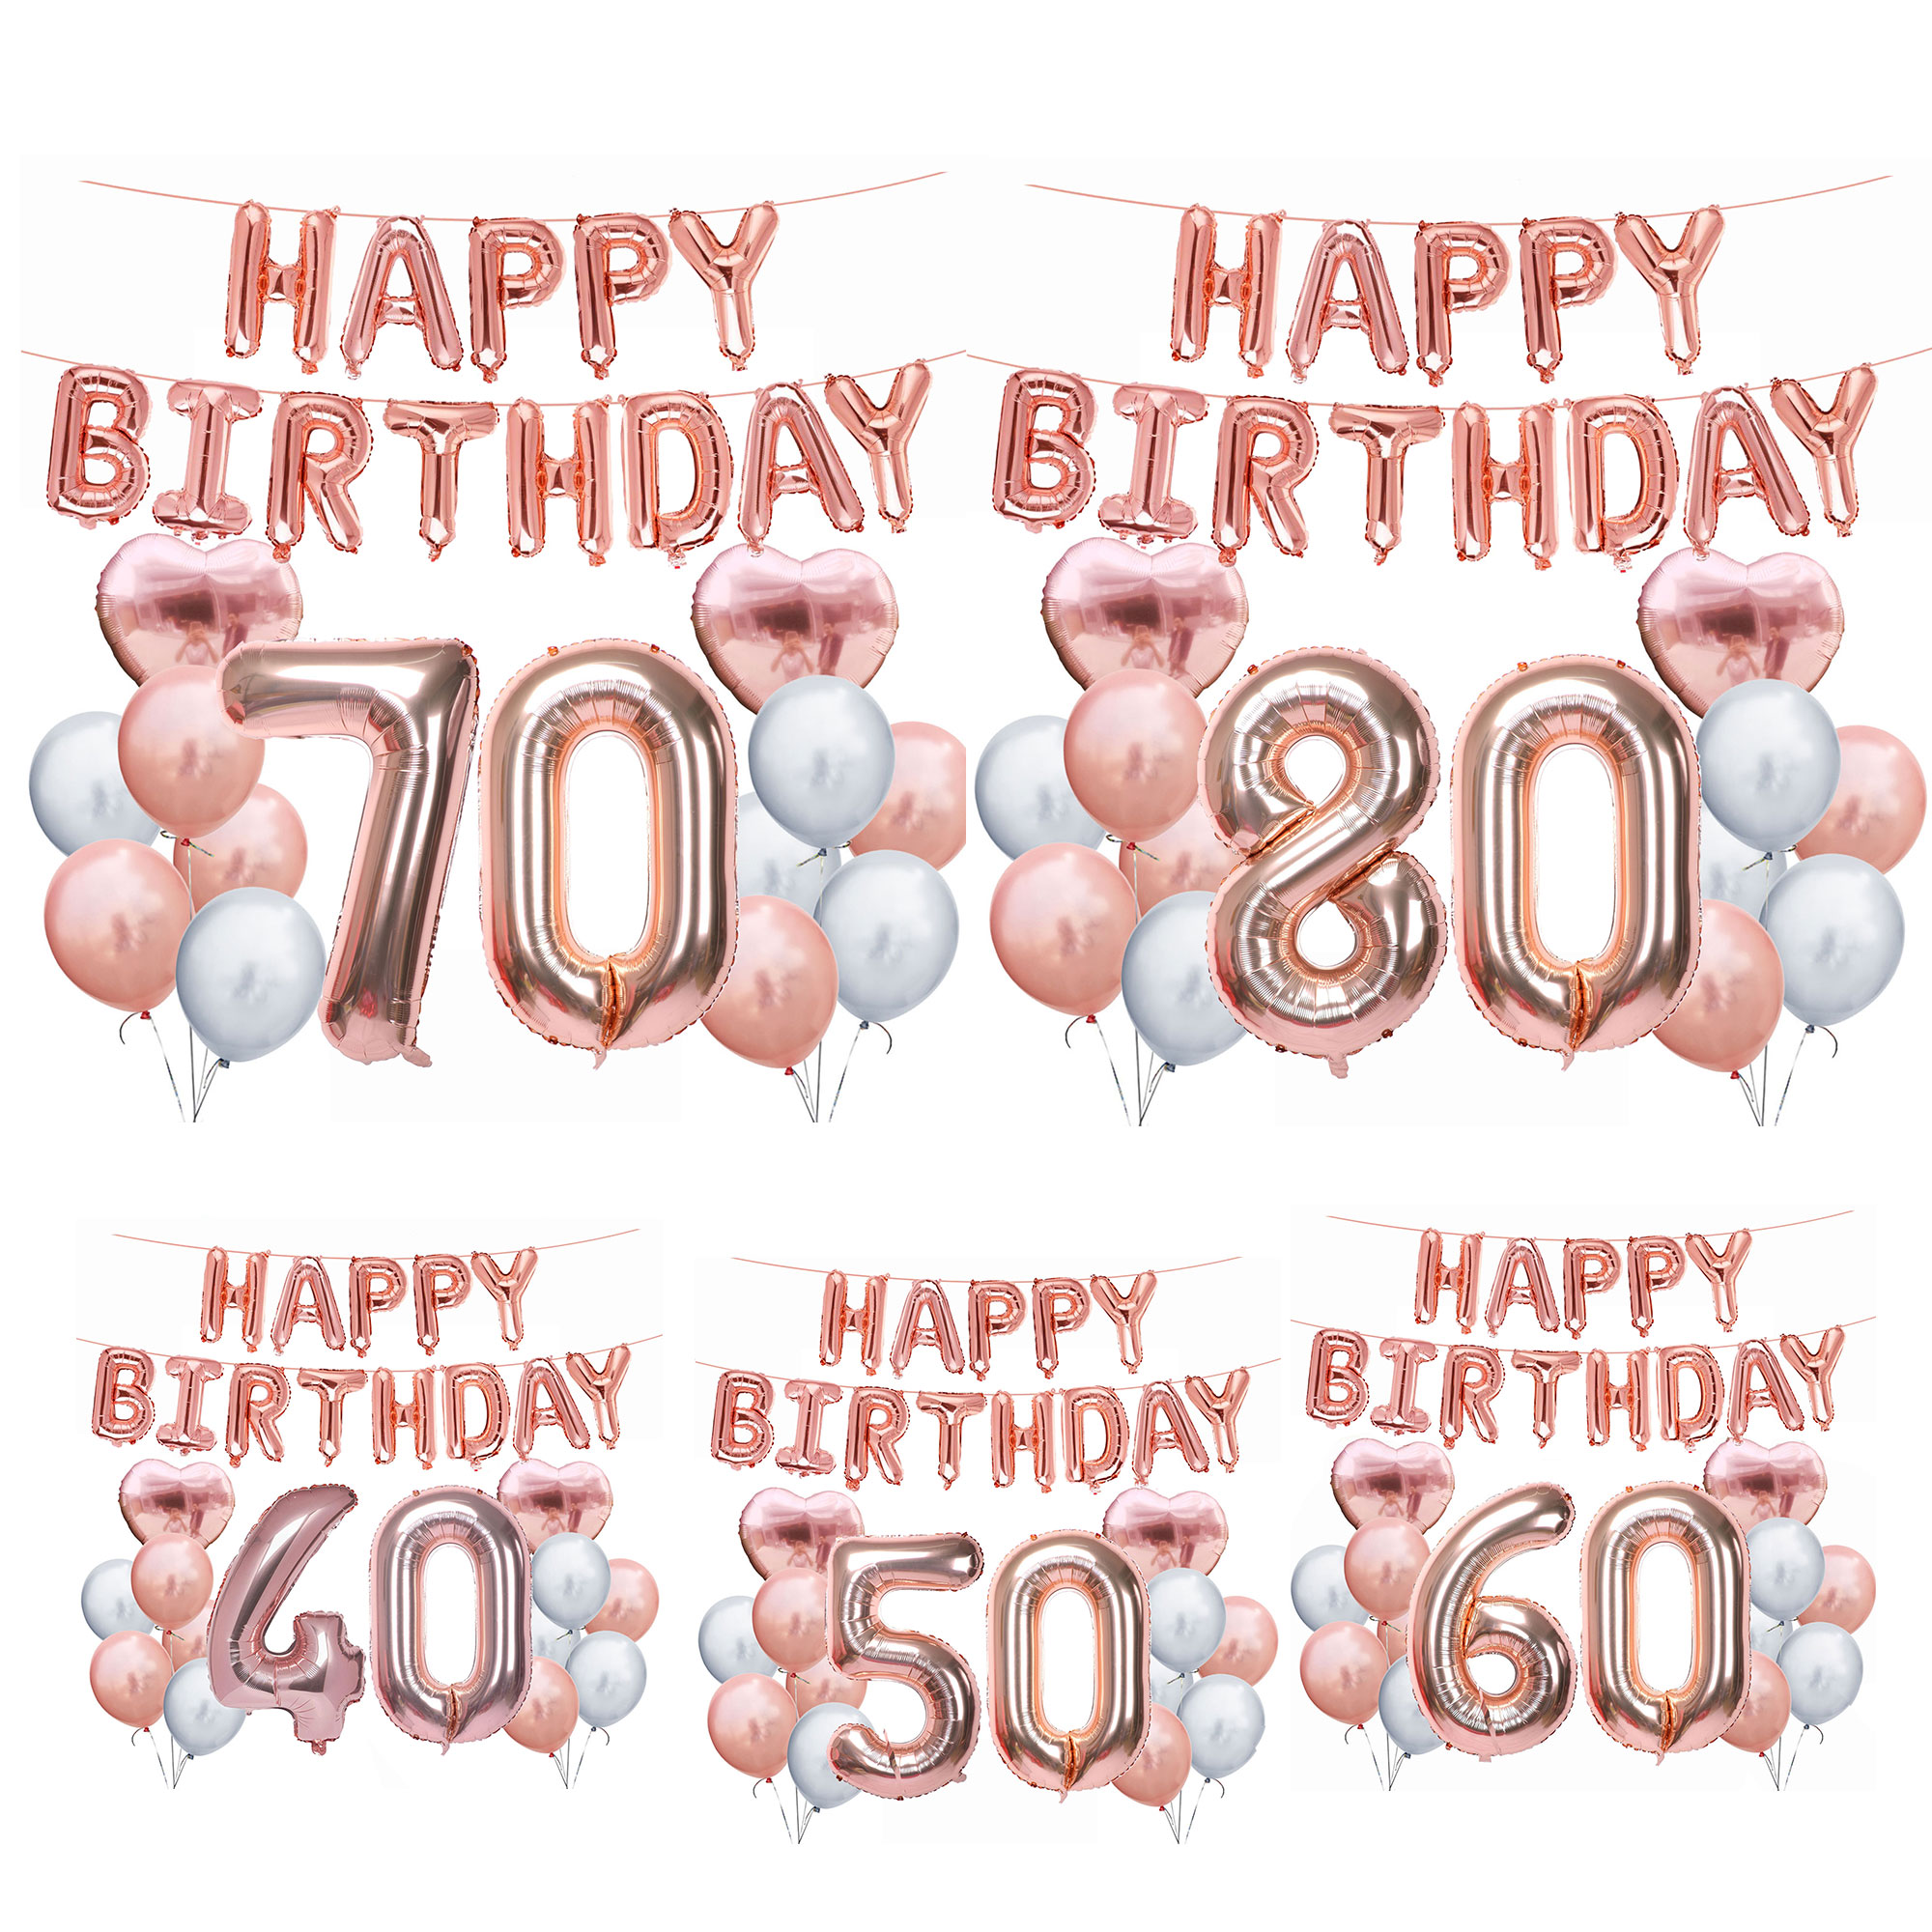 ZLJQ 30 40 <font><b>50</b></font> 60 70 80 Years Birthday Party Supplies Rose Gold Happy Birthday Foil Balloon Adult Birthday Party Decoration Balon image